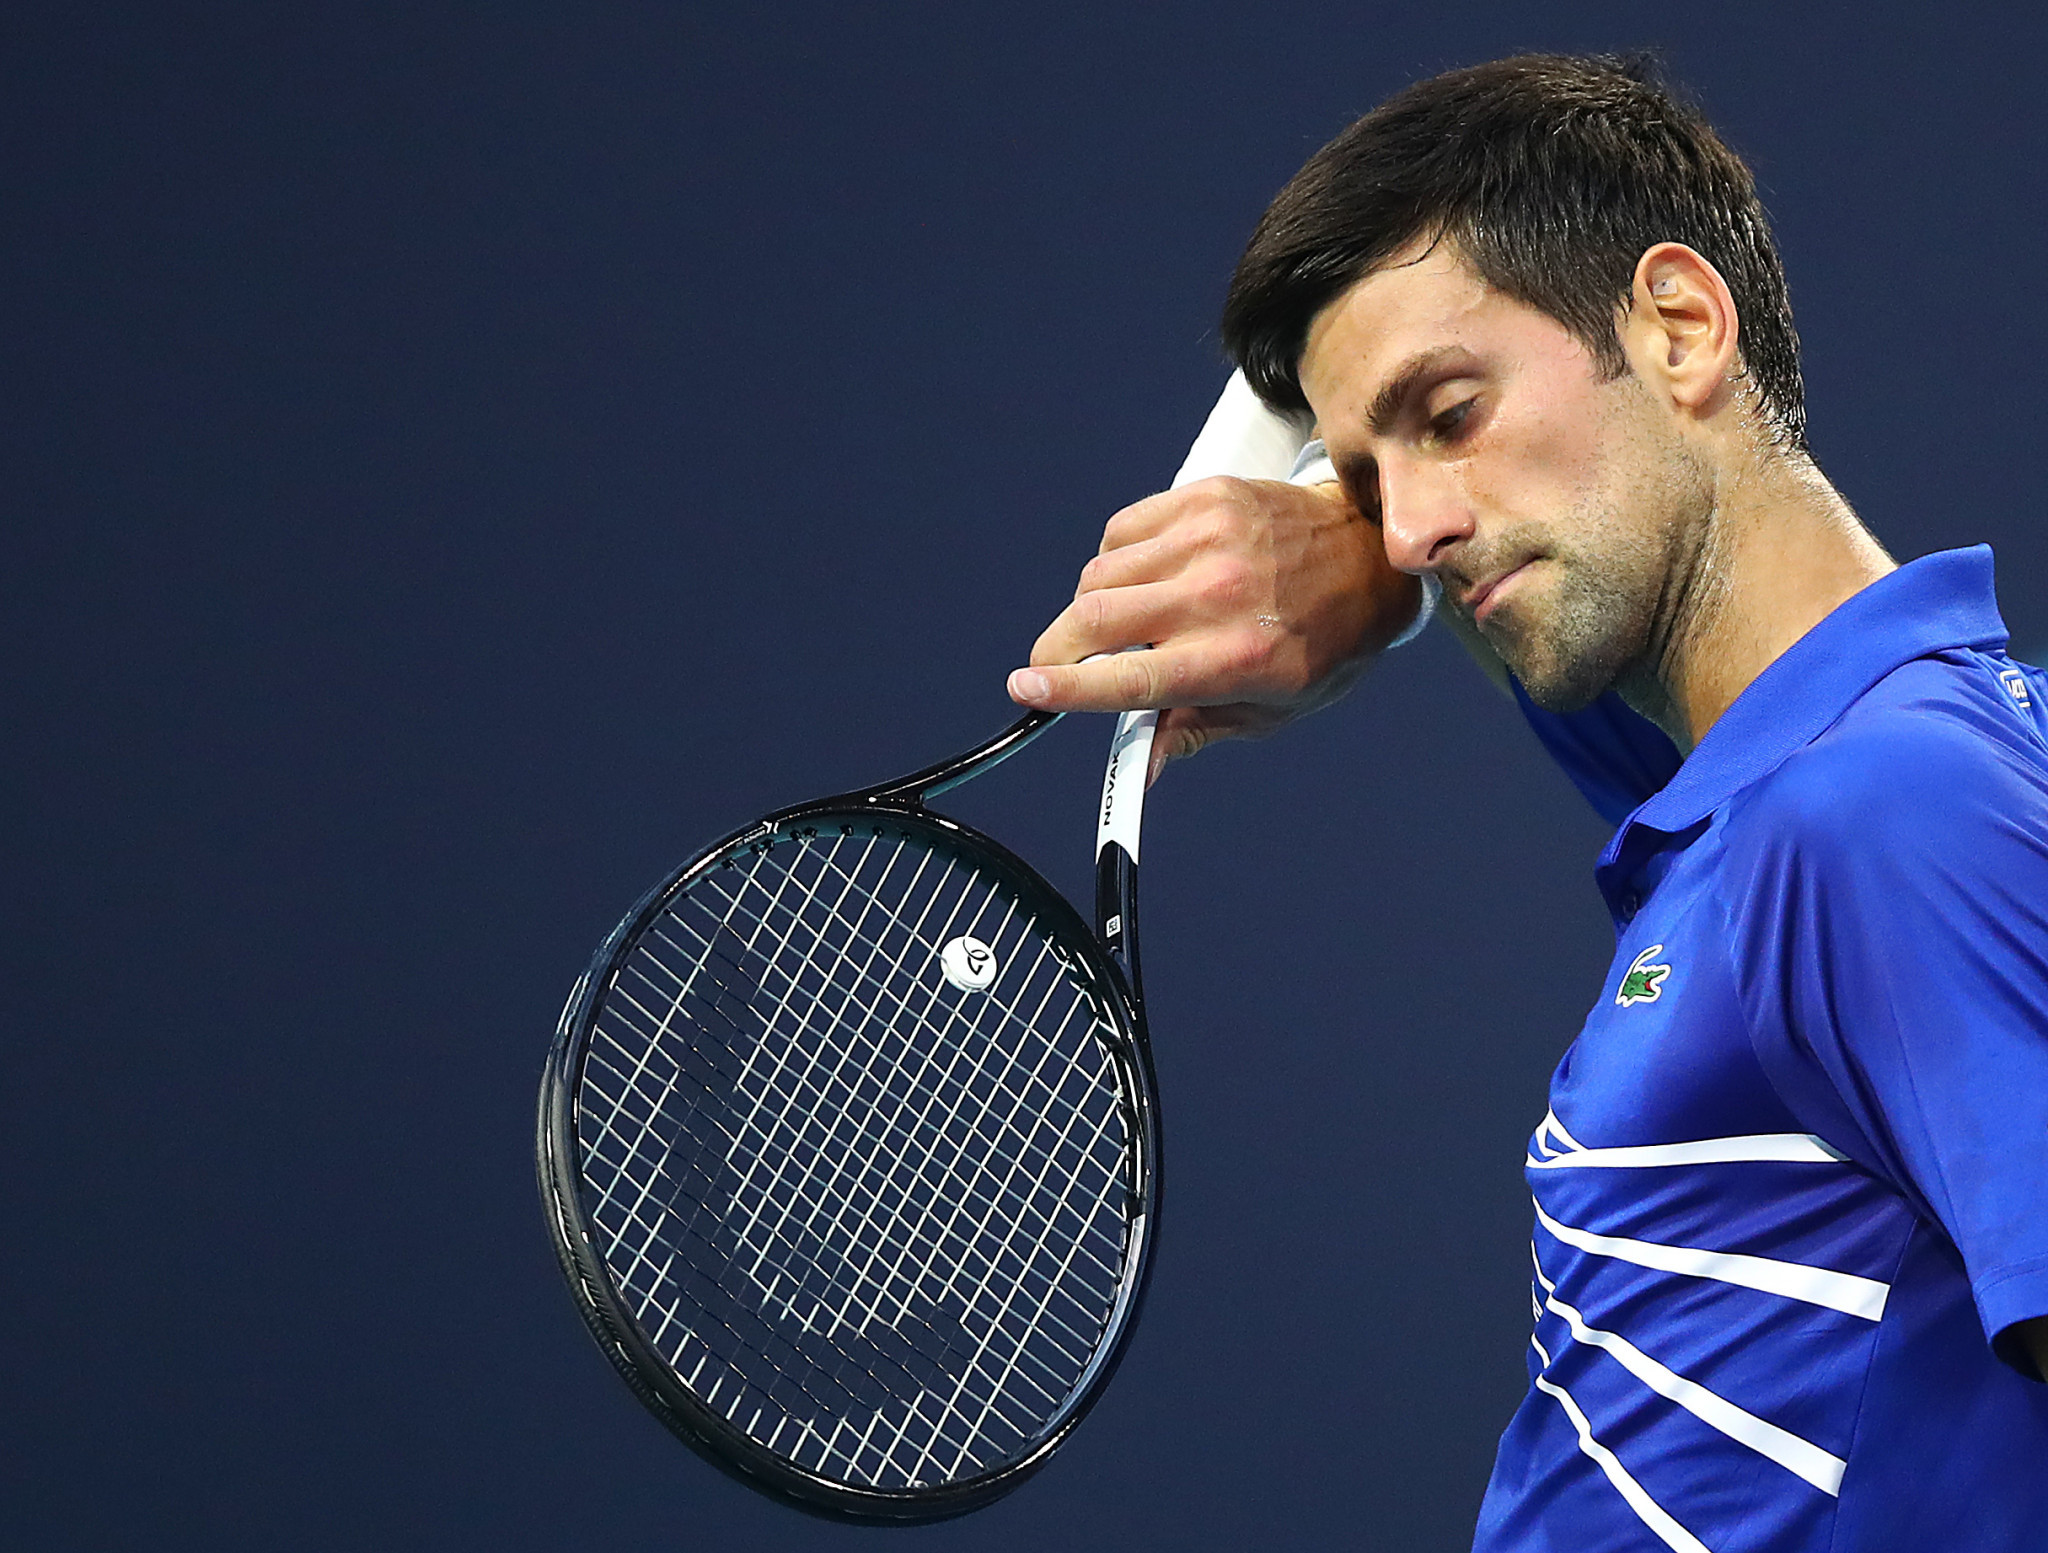 World number one Djokovic loses in fourth round of Miami Open